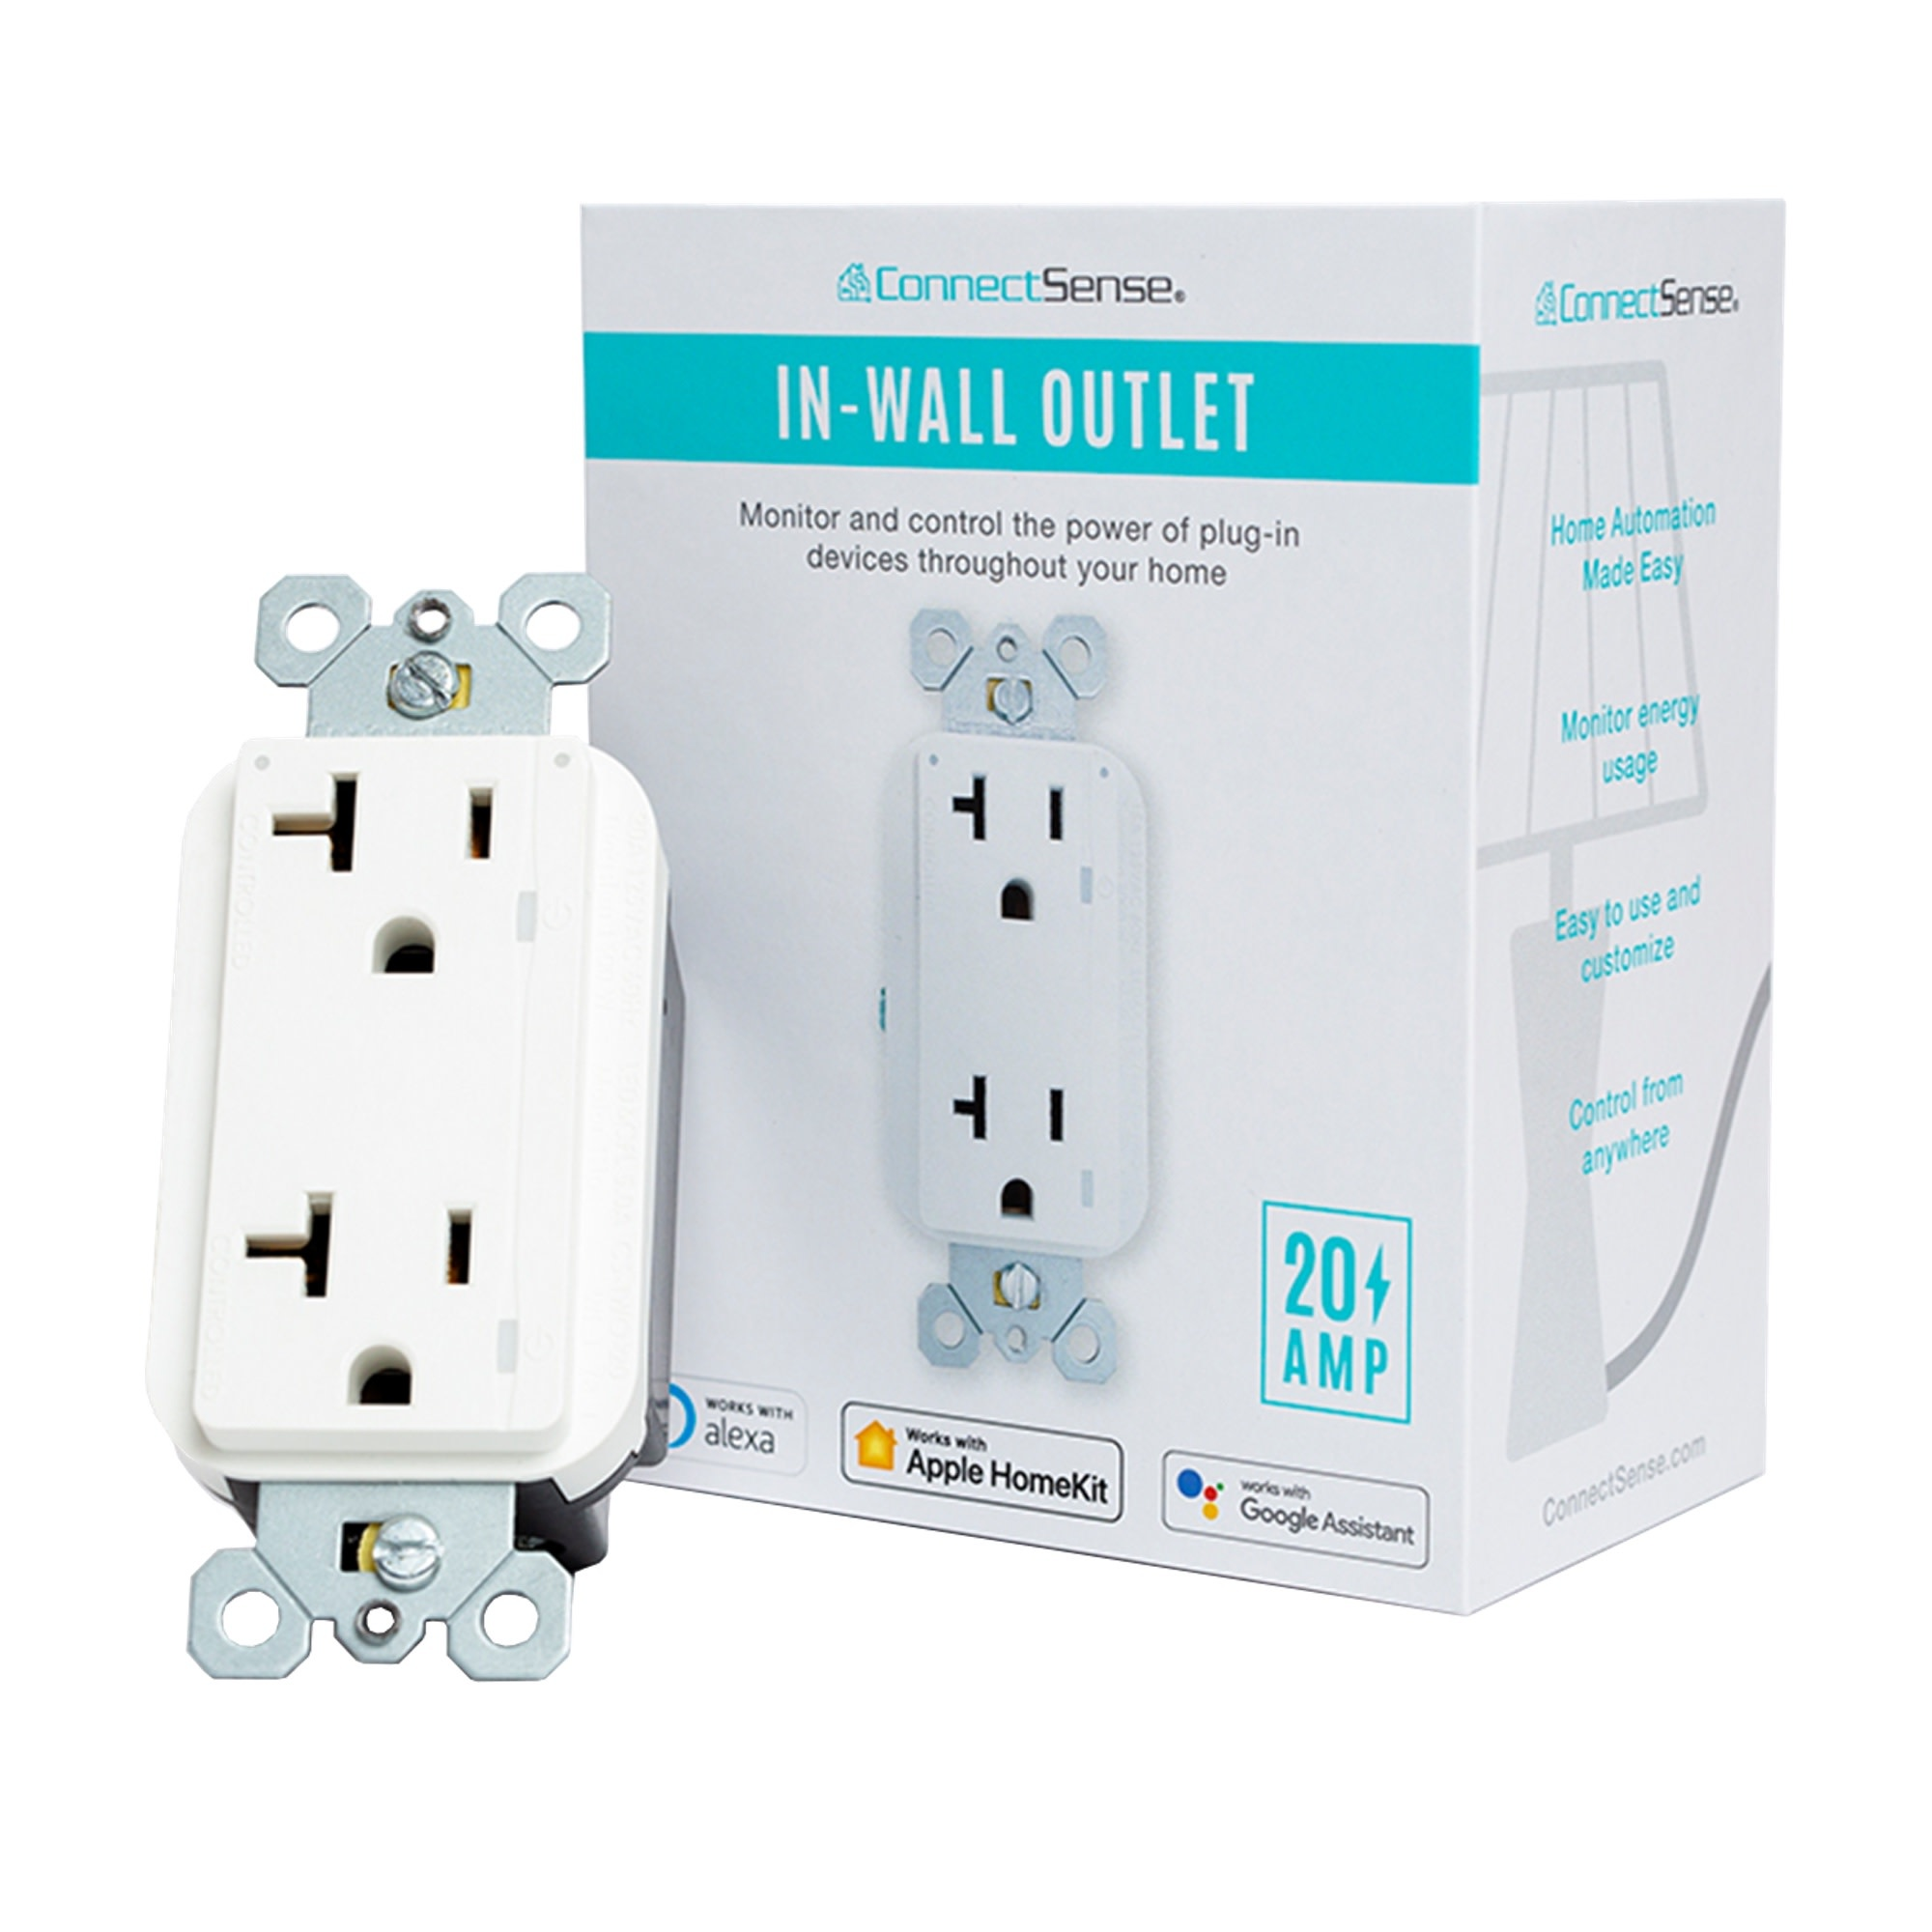 Connect Sense Smart In-Wall Outlet Pro